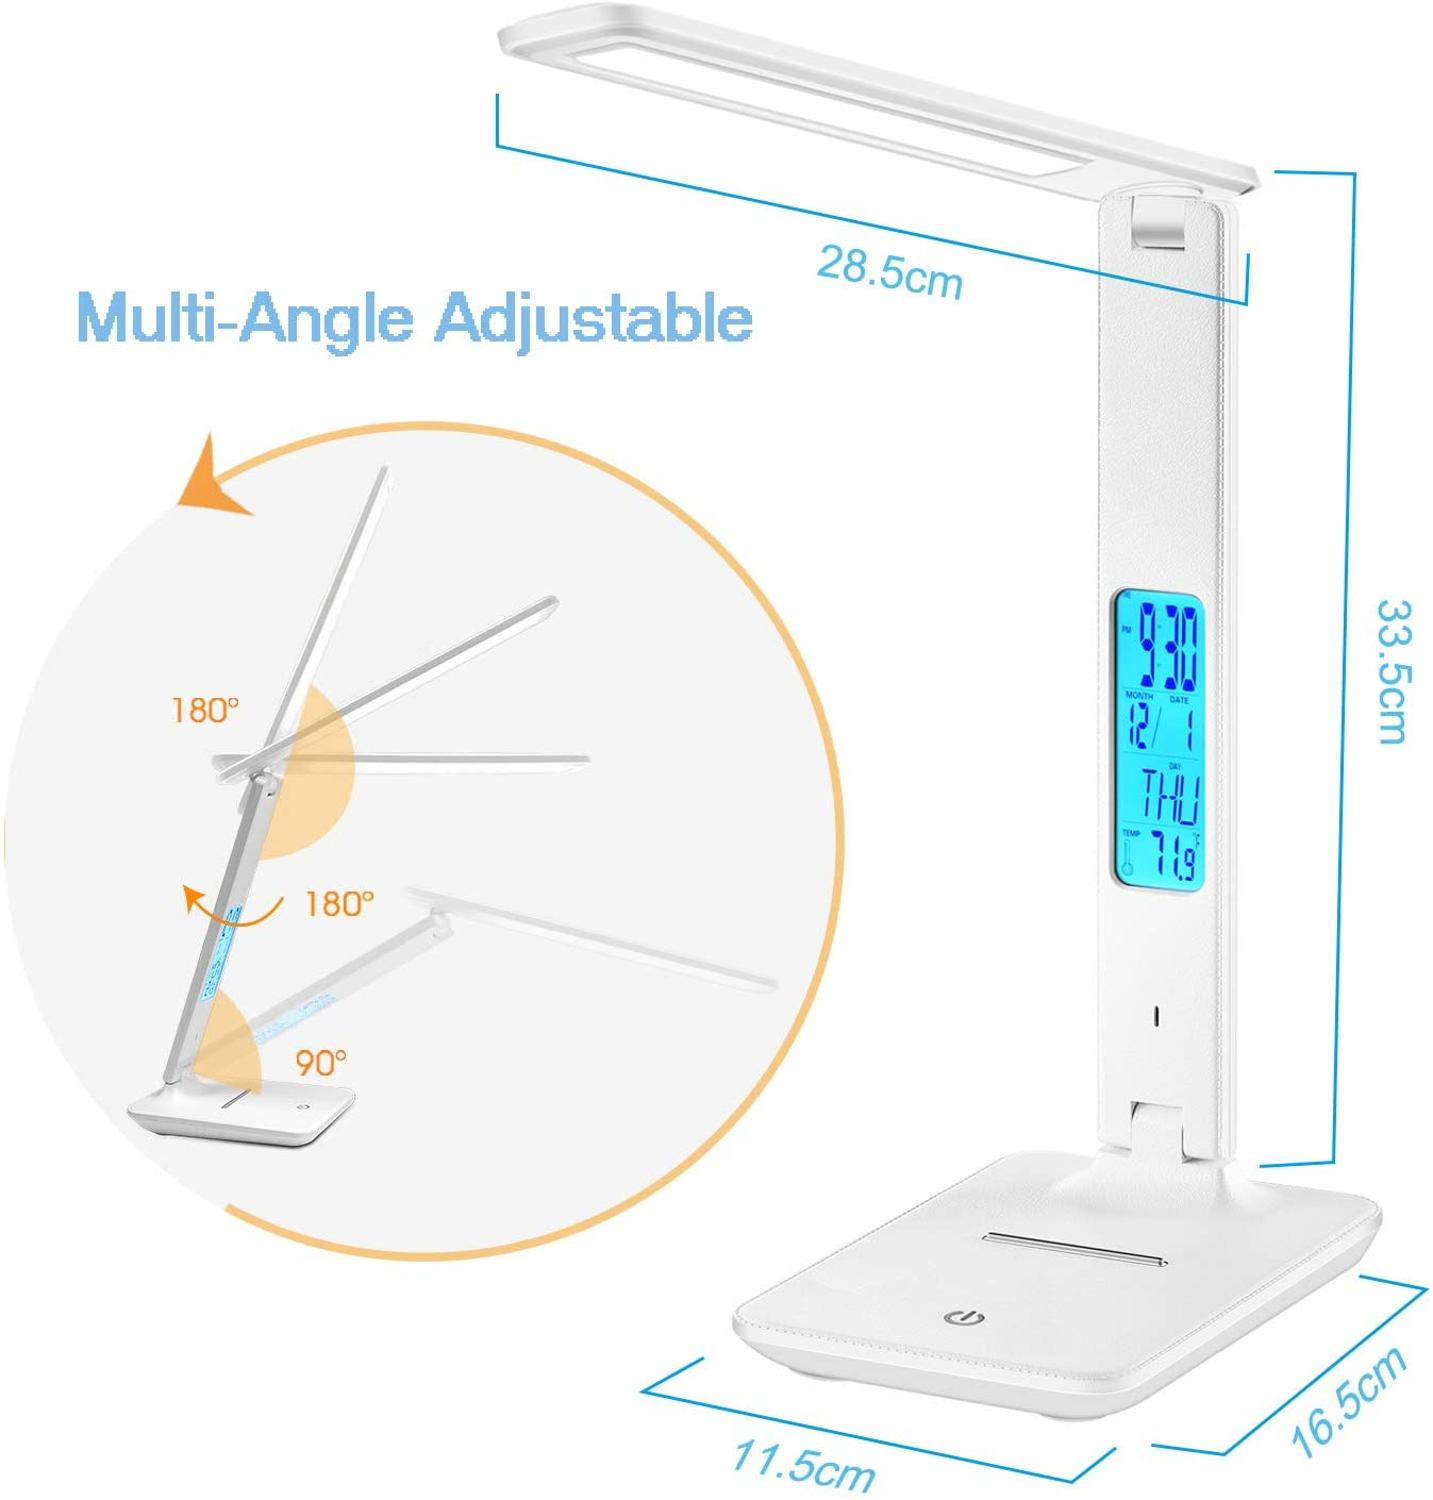 Modern Business Led Office Desk Lamp Touch Dimmable Foldable With Calendar Temperature Alarm Clock table Reading Light LAOPAO 5